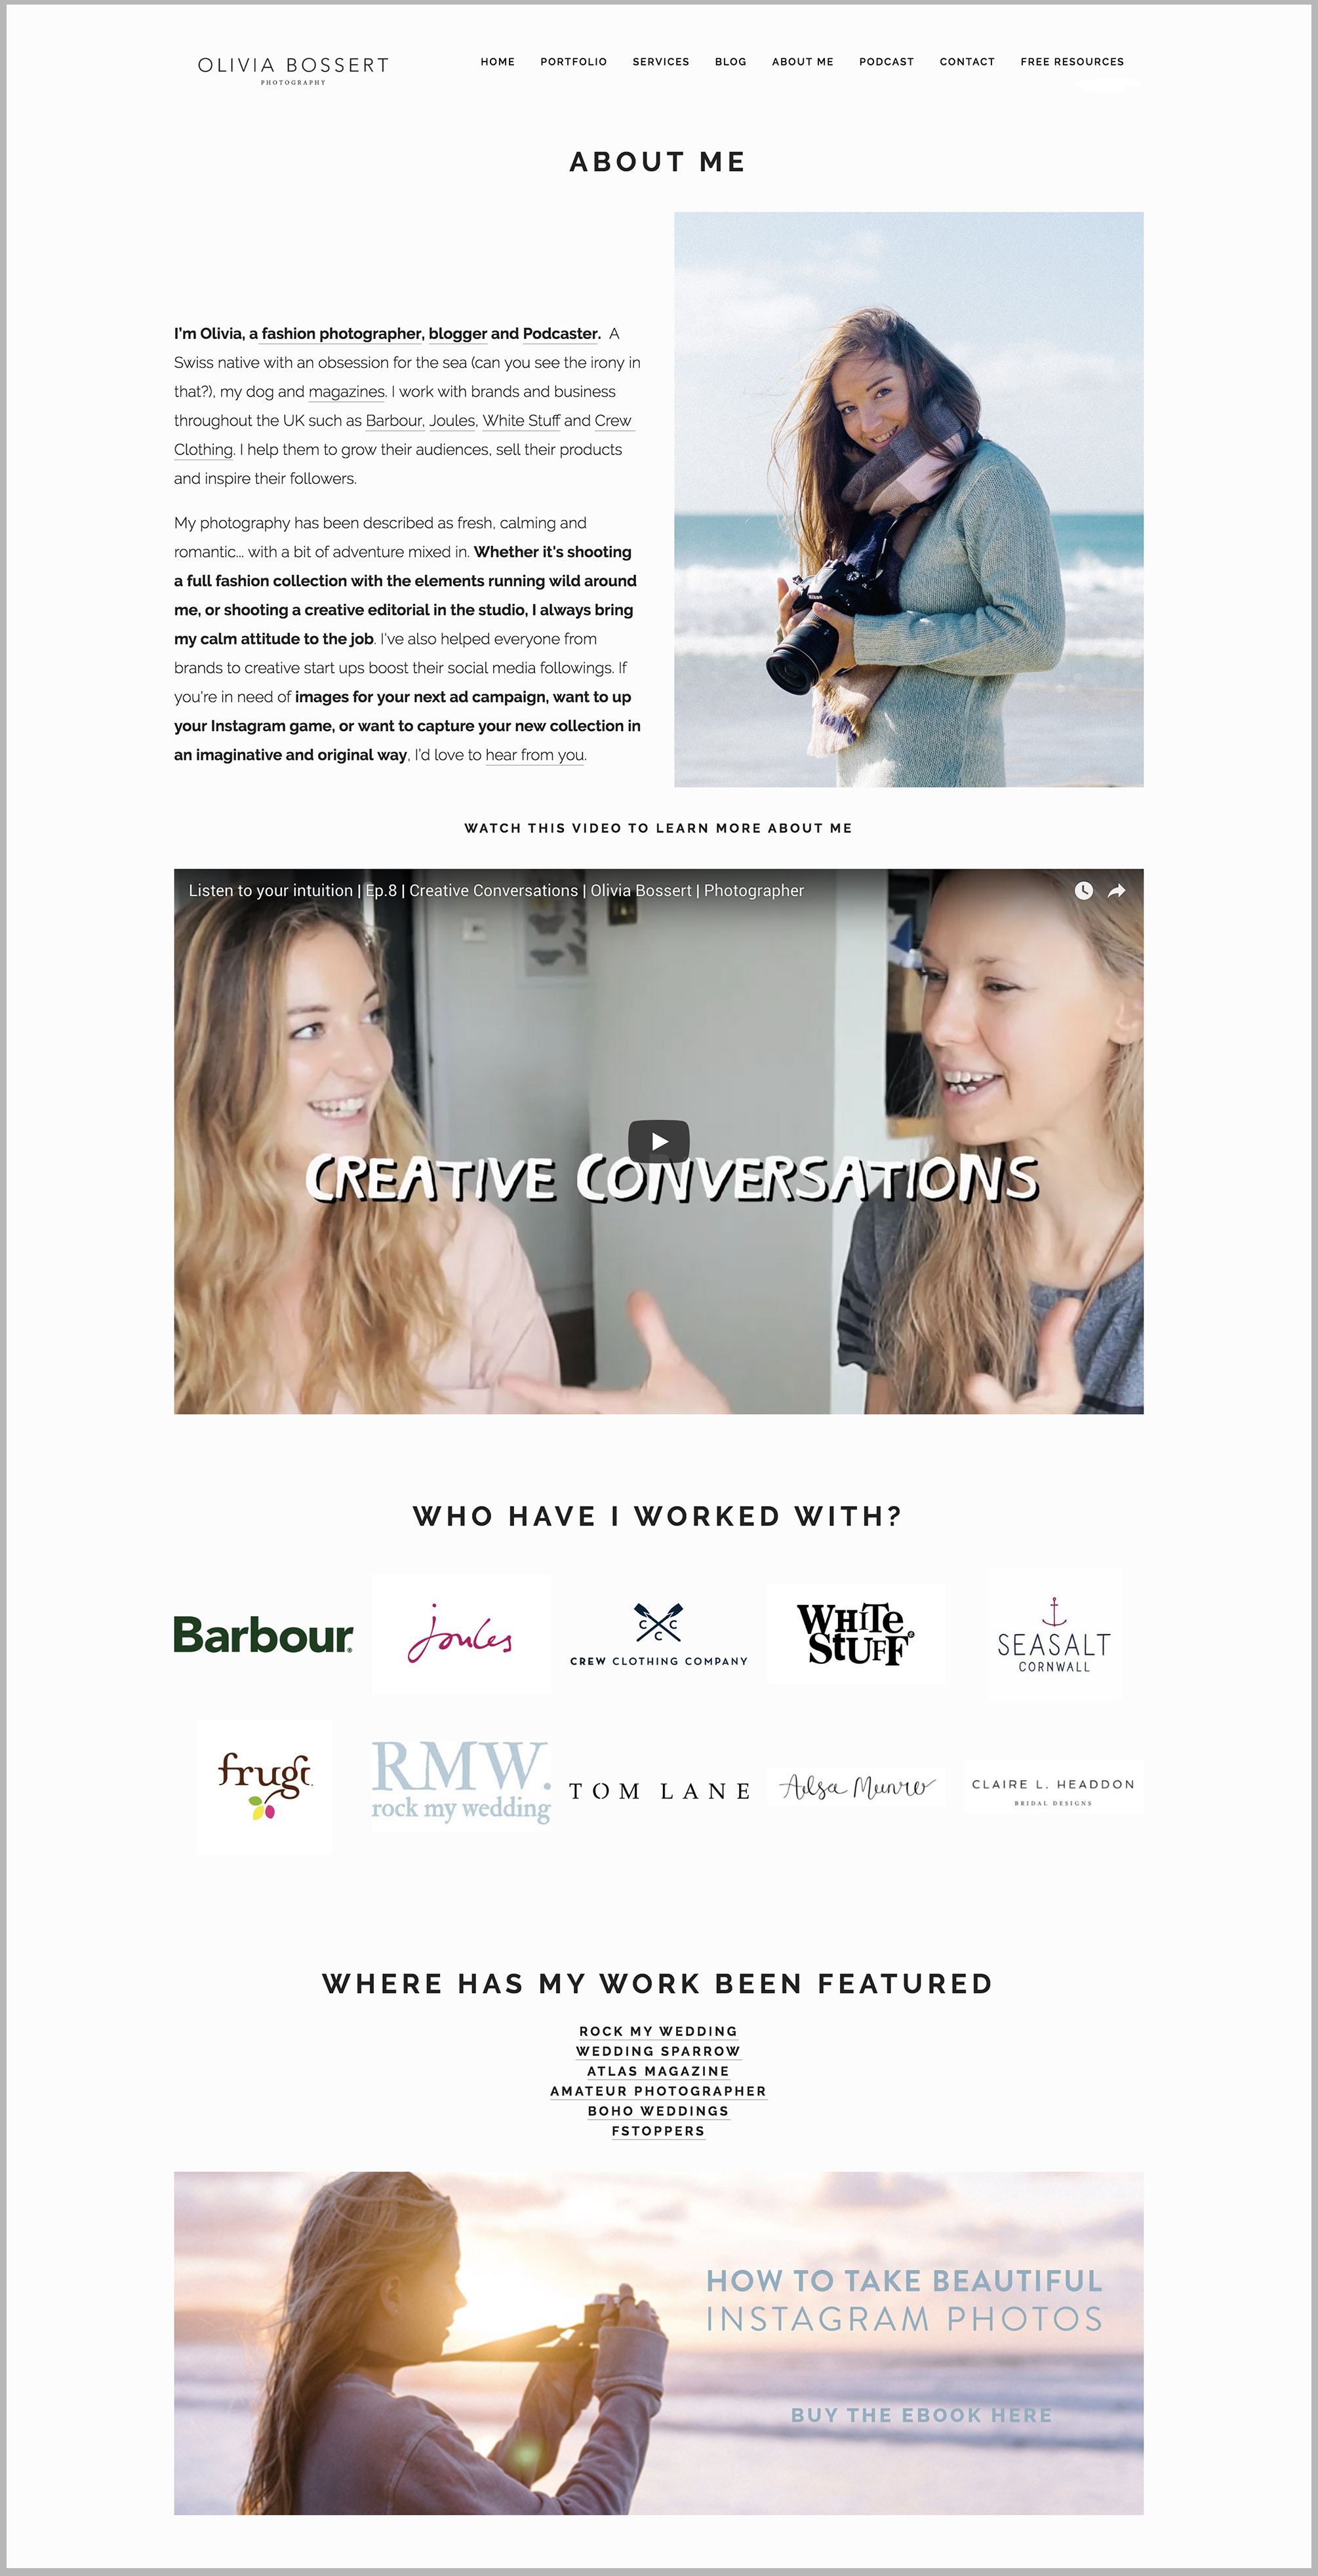 Olivia Bossert  has made her top clients and press features really stand out on her site, and I love how she has used video as well!